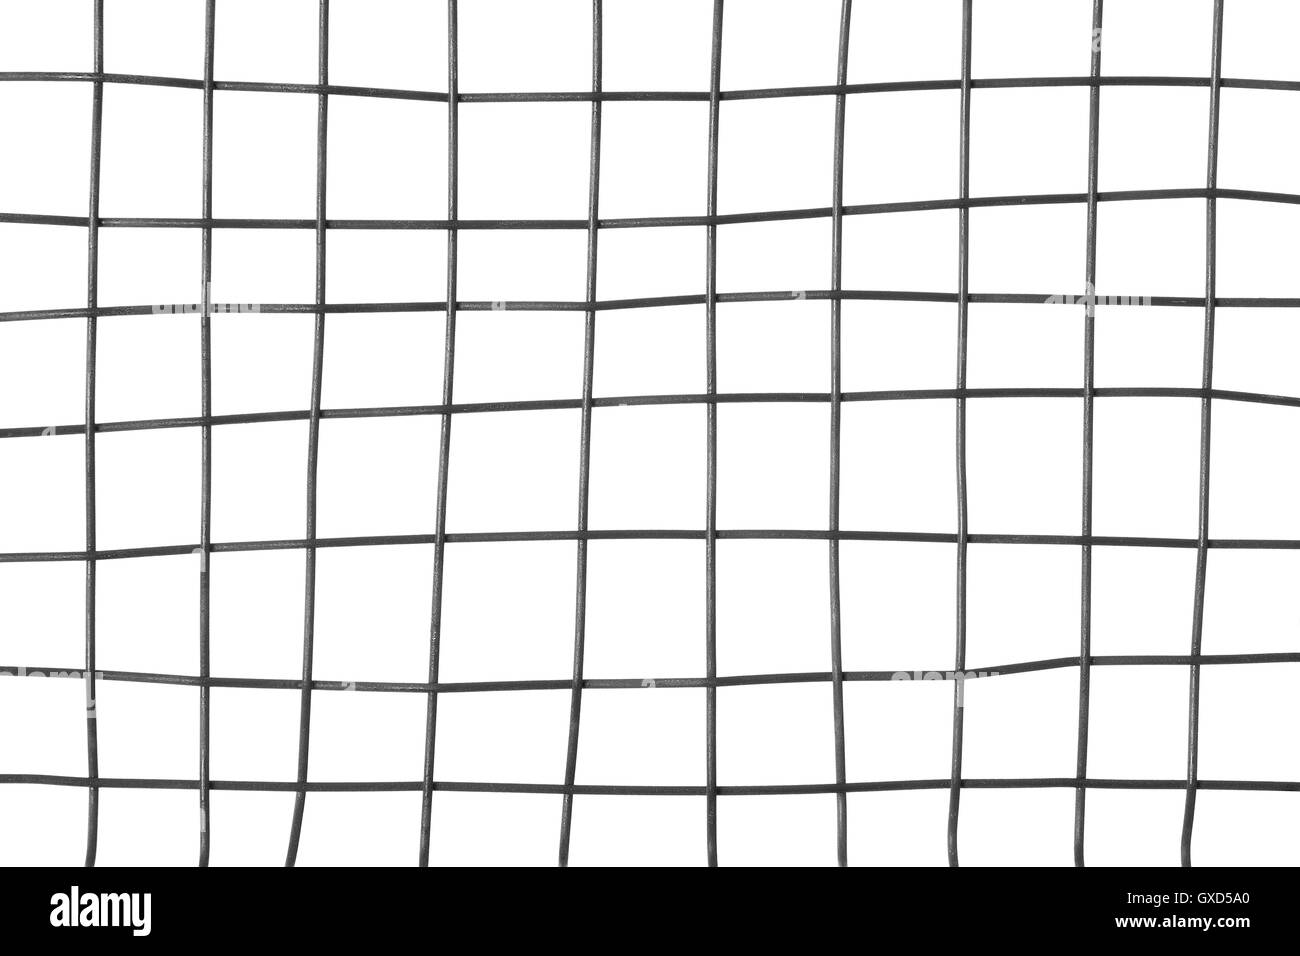 Metal grid on white background - Stock Image